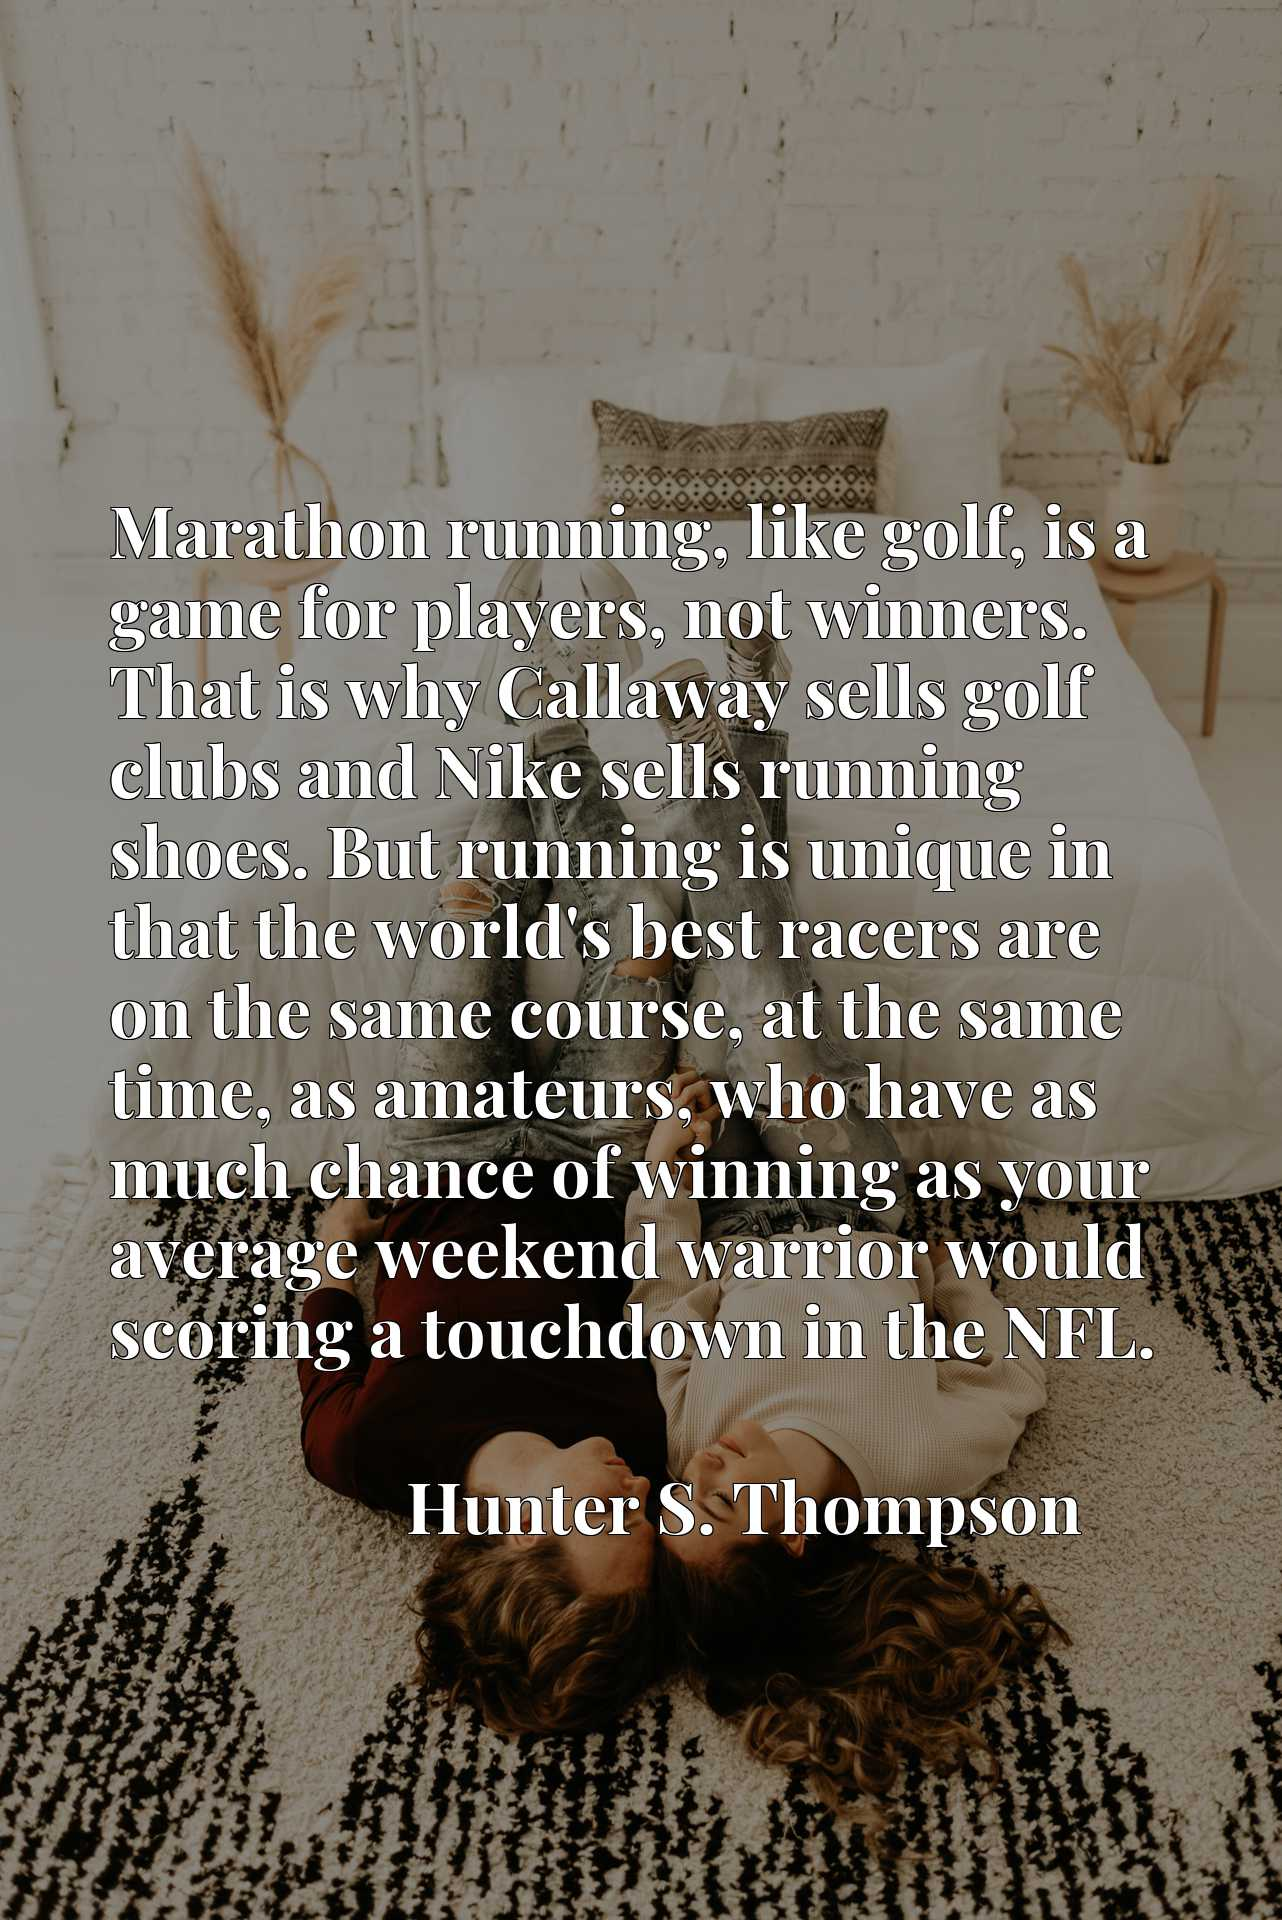 Marathon running, like golf, is a game for players, not winners. That is why Callaway sells golf clubs and Nike sells running shoes. But running is unique in that the world's best racers are on the same course, at the same time, as amateurs, who have as much chance of winning as your average weekend warrior would scoring a touchdown in the NFL.